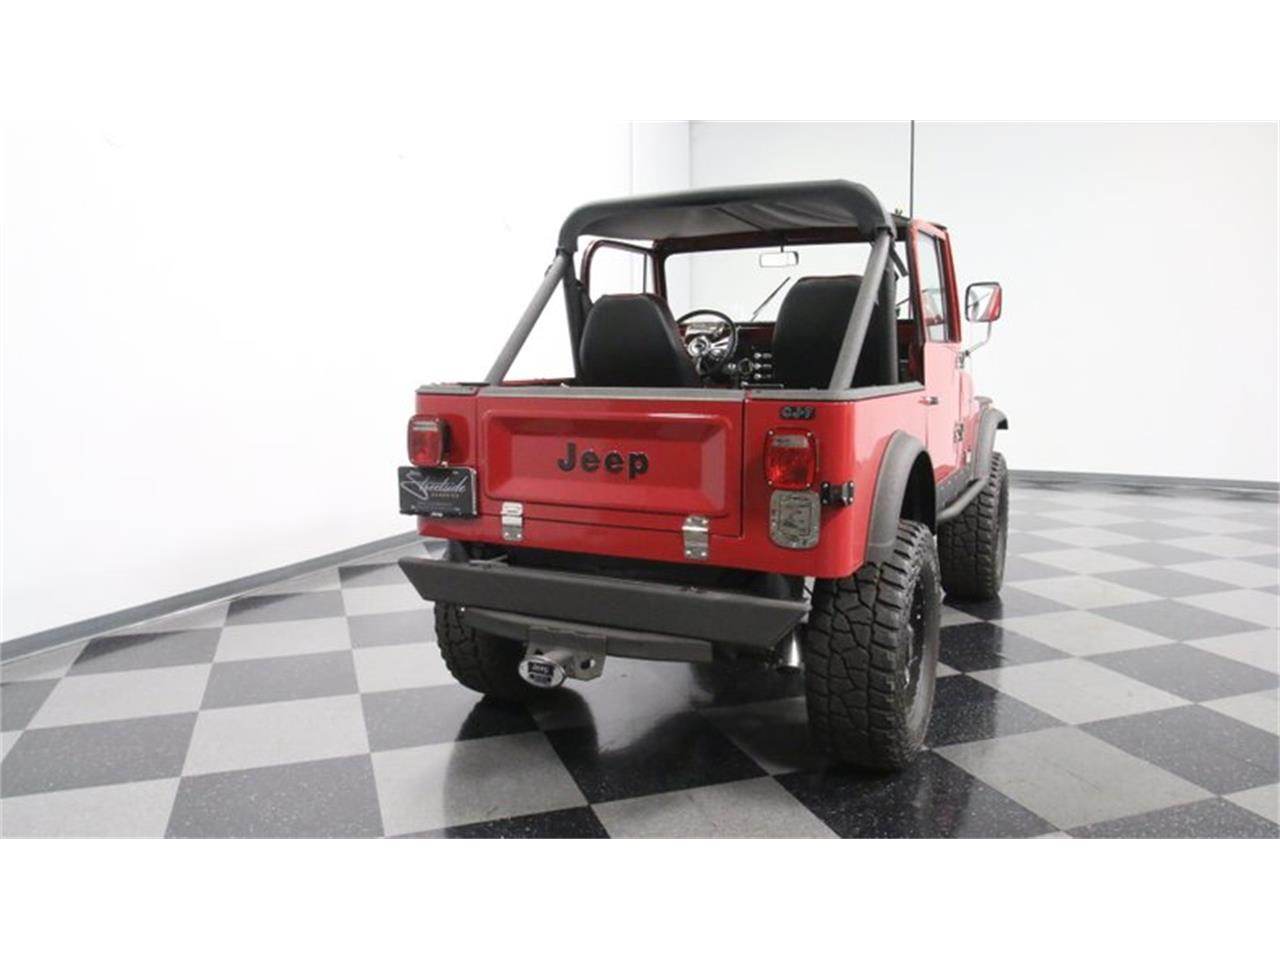 1982 Jeep CJ7 for sale in Lithia Springs, GA – photo 12